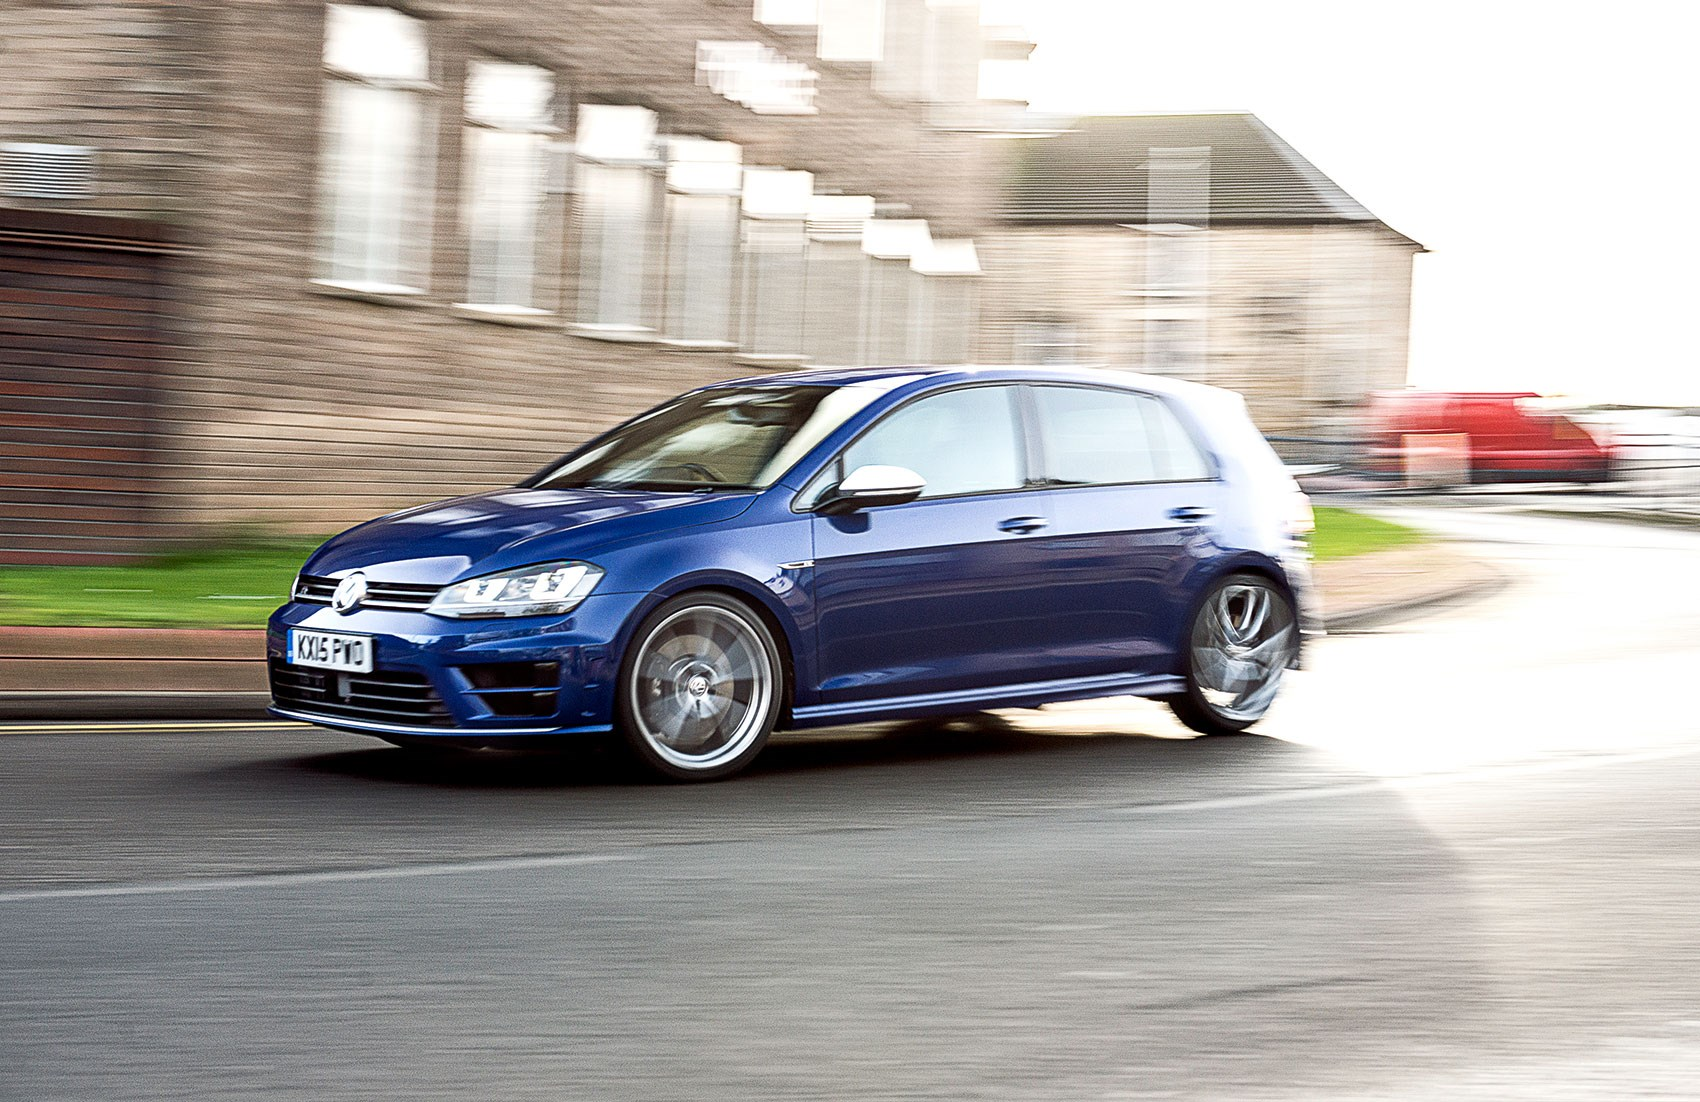 Volkswagen volkswagen type r 2014 : VW Golf R (2016) long-term test review by CAR Magazine